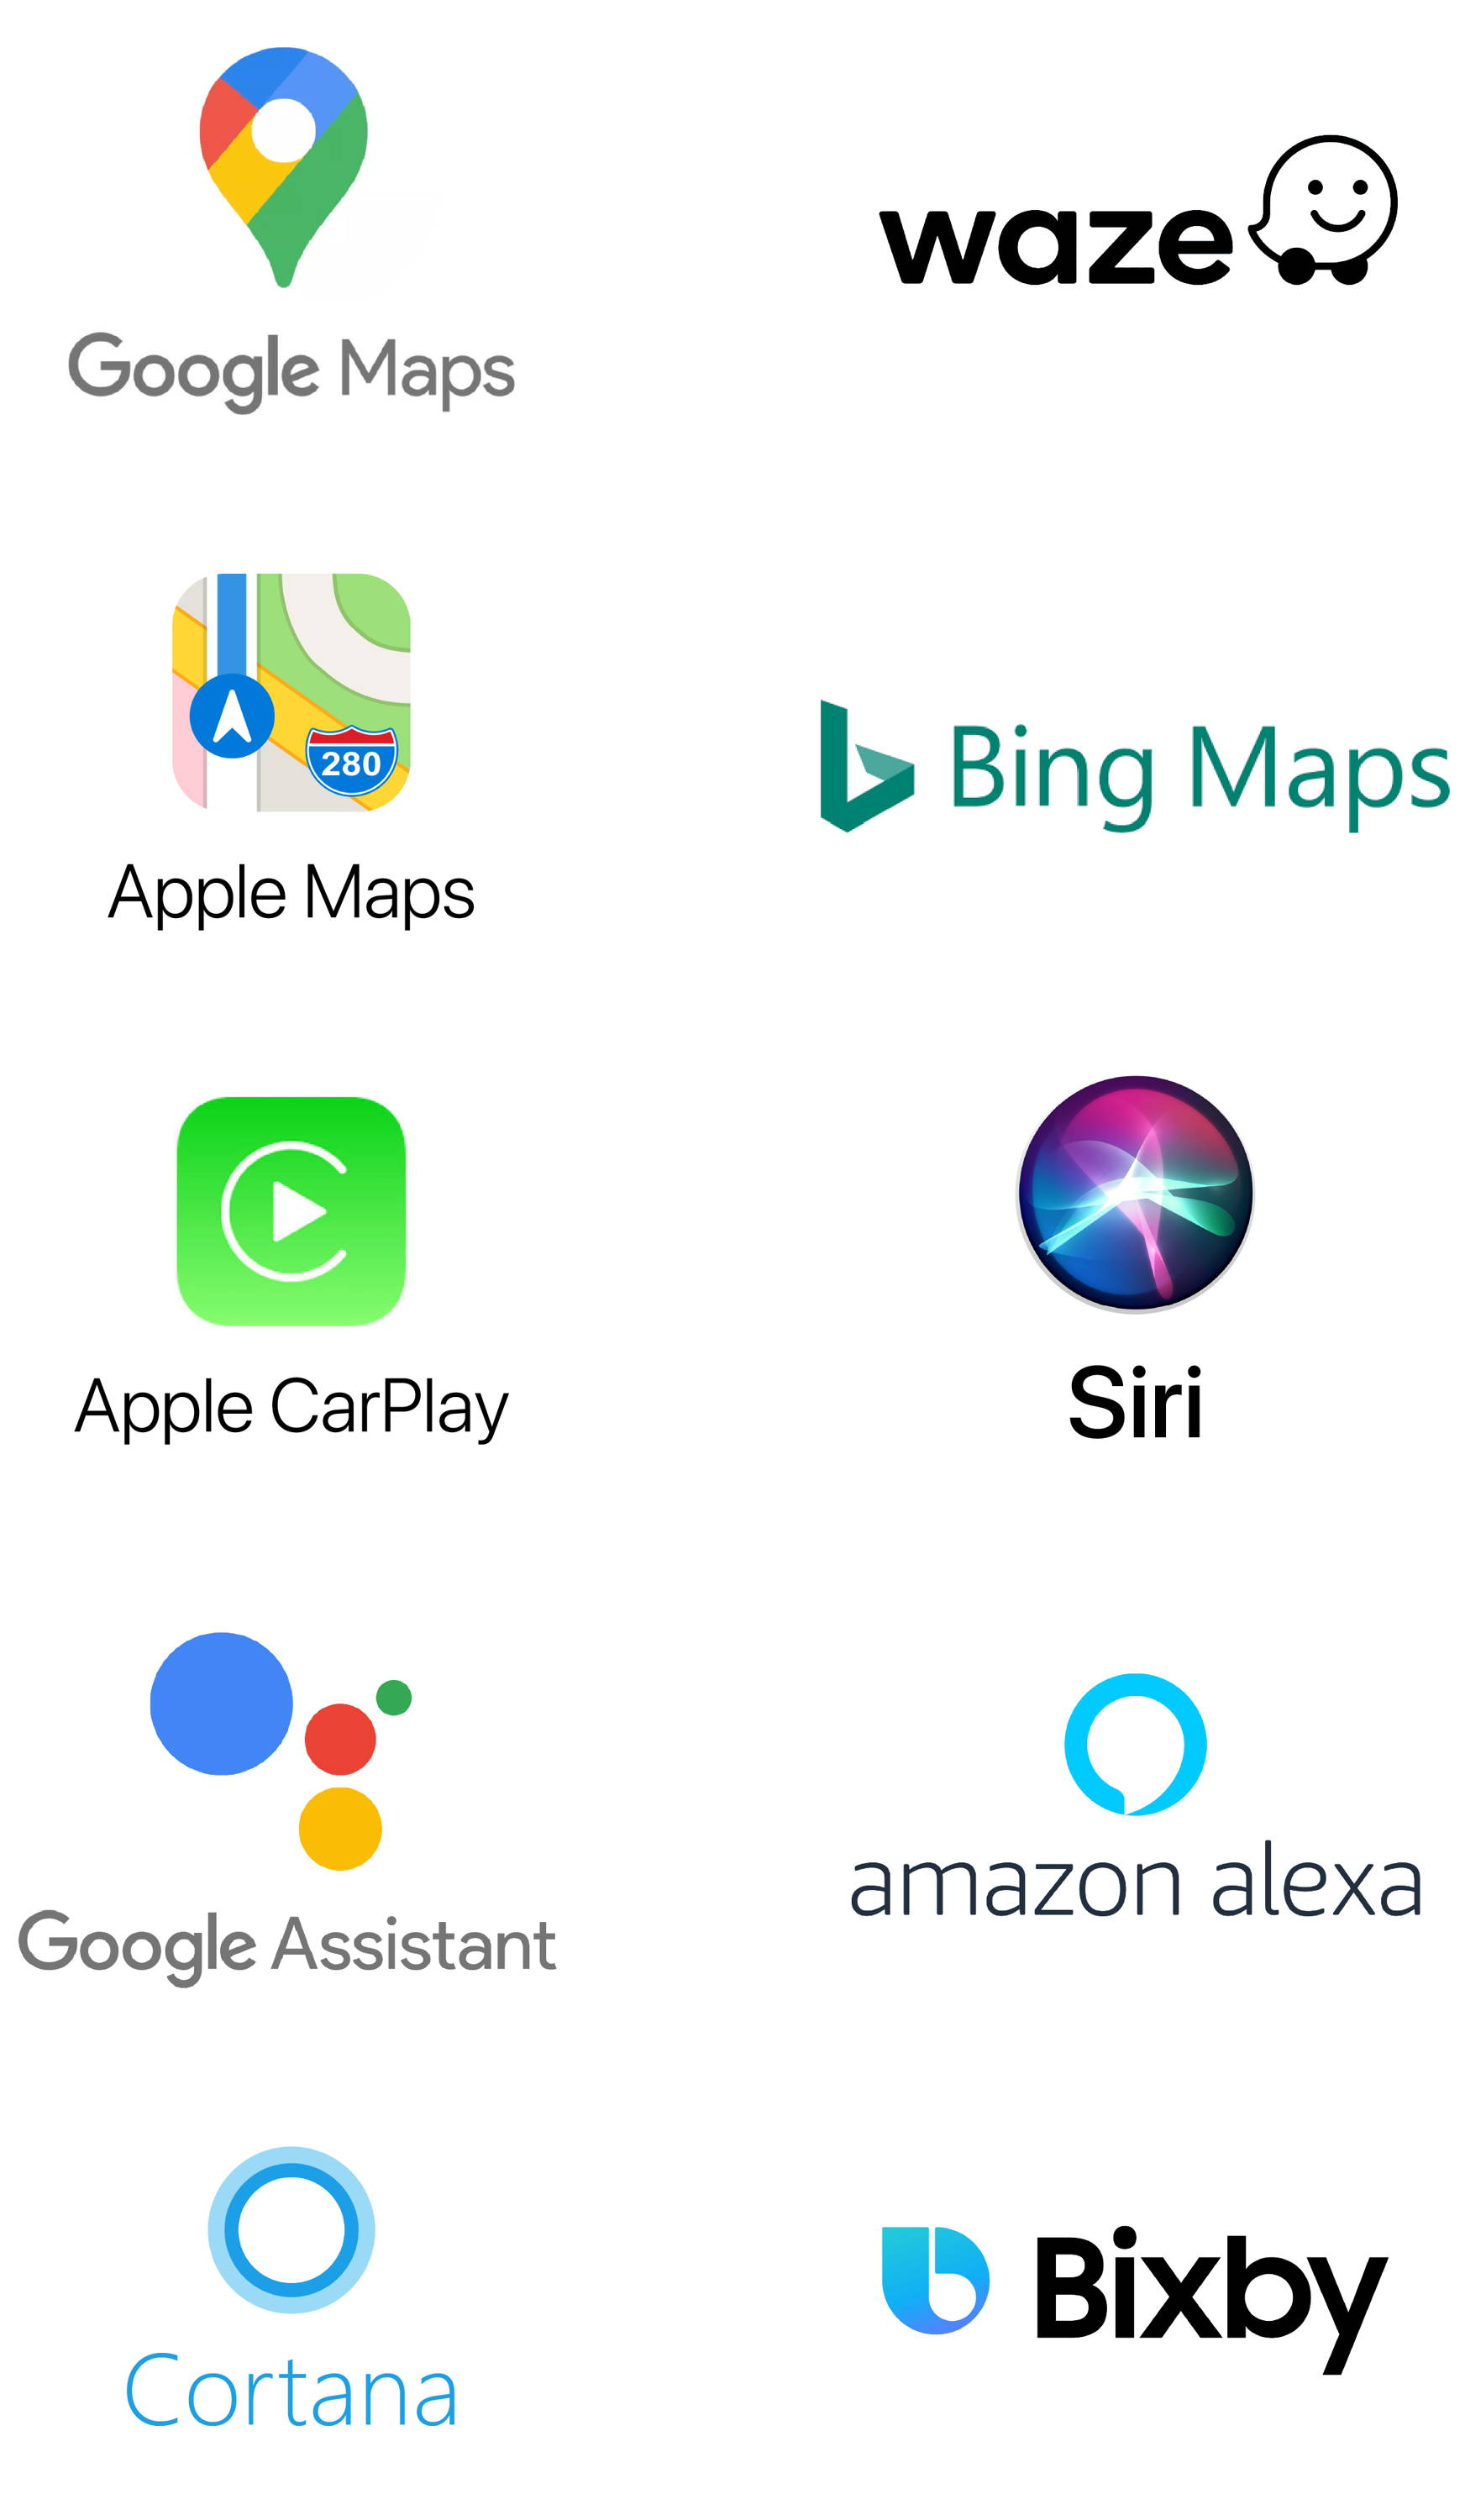 map and voice search platforms